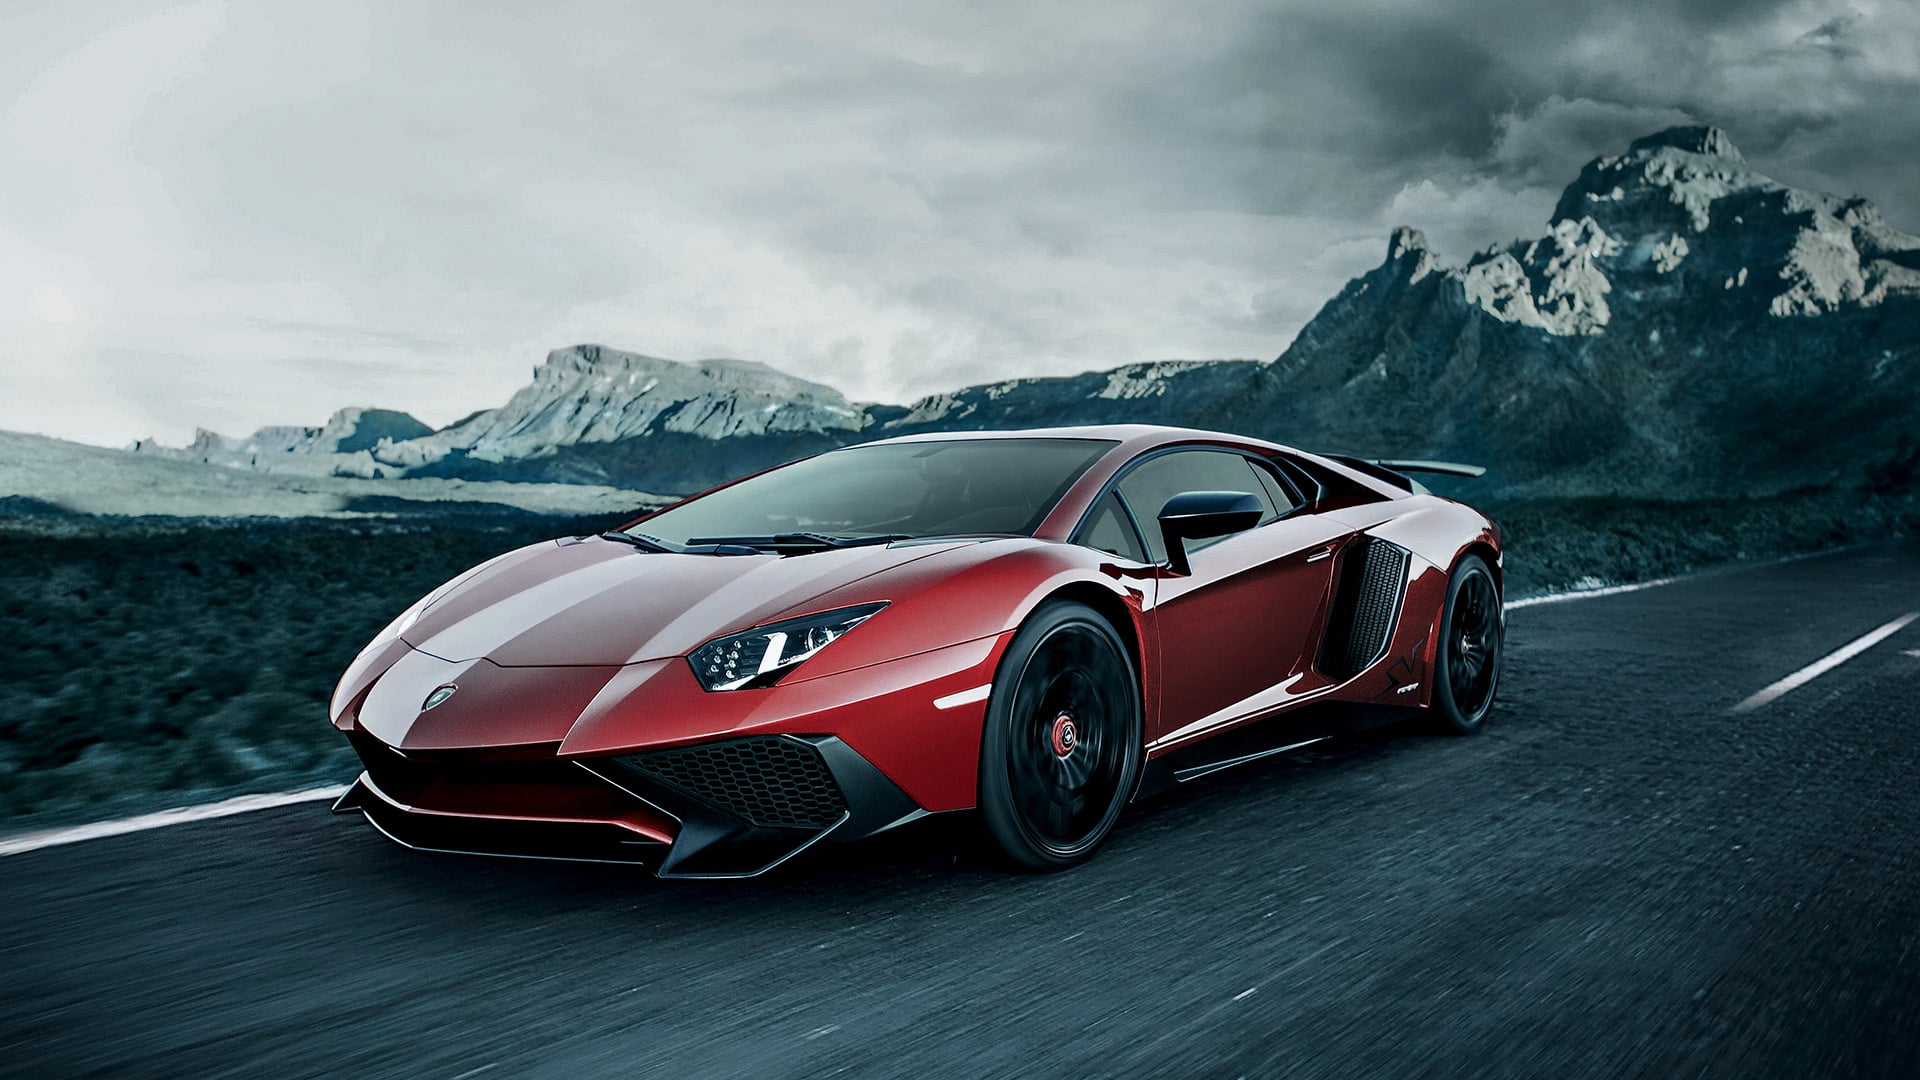 lamborghini aventador superveloce coup pictures videos. Black Bedroom Furniture Sets. Home Design Ideas